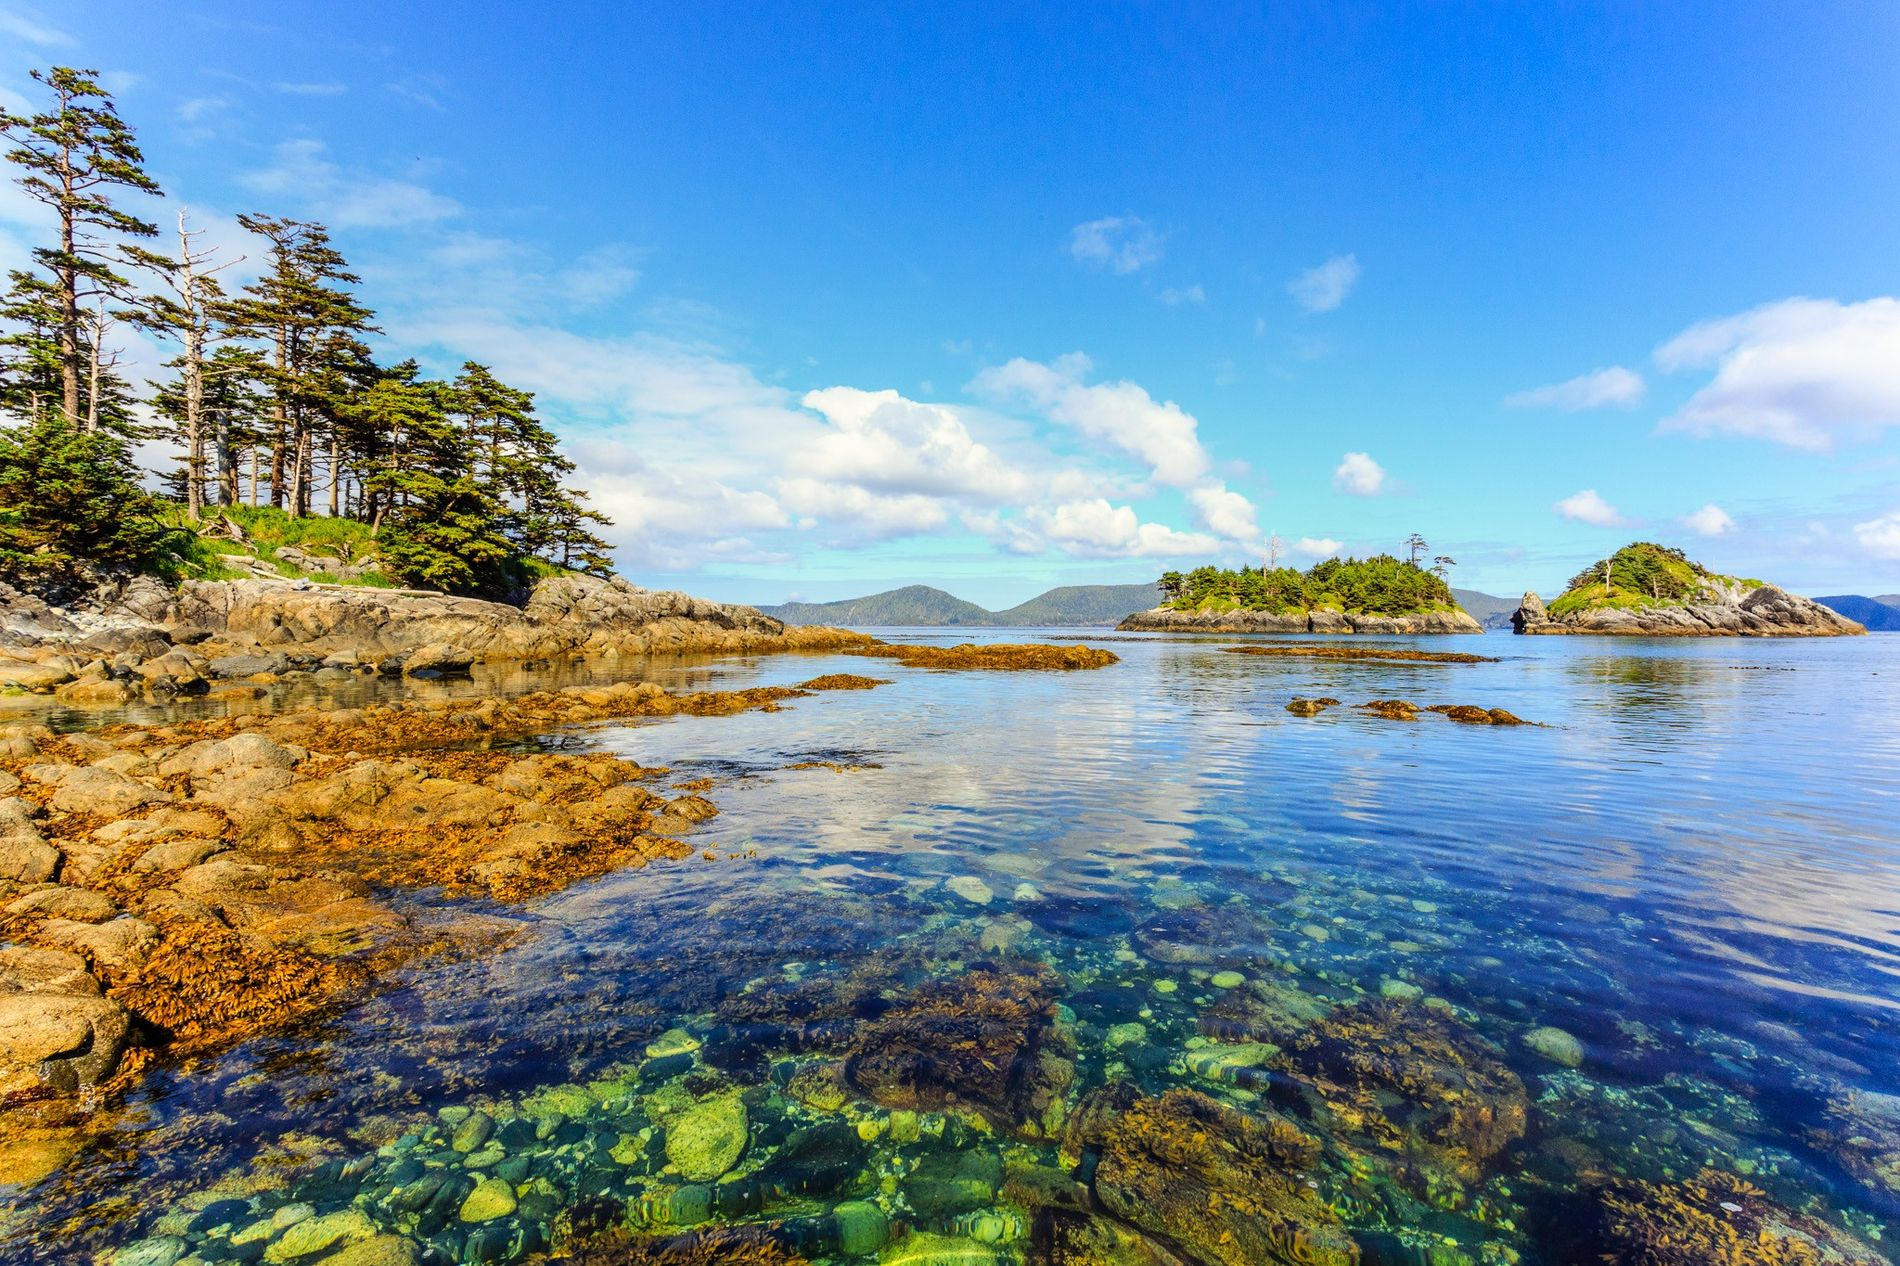 SG_ang Gwaay (Anthony Island) is located in the southwest corner of Gwaii Haanas National Park Reserve ...